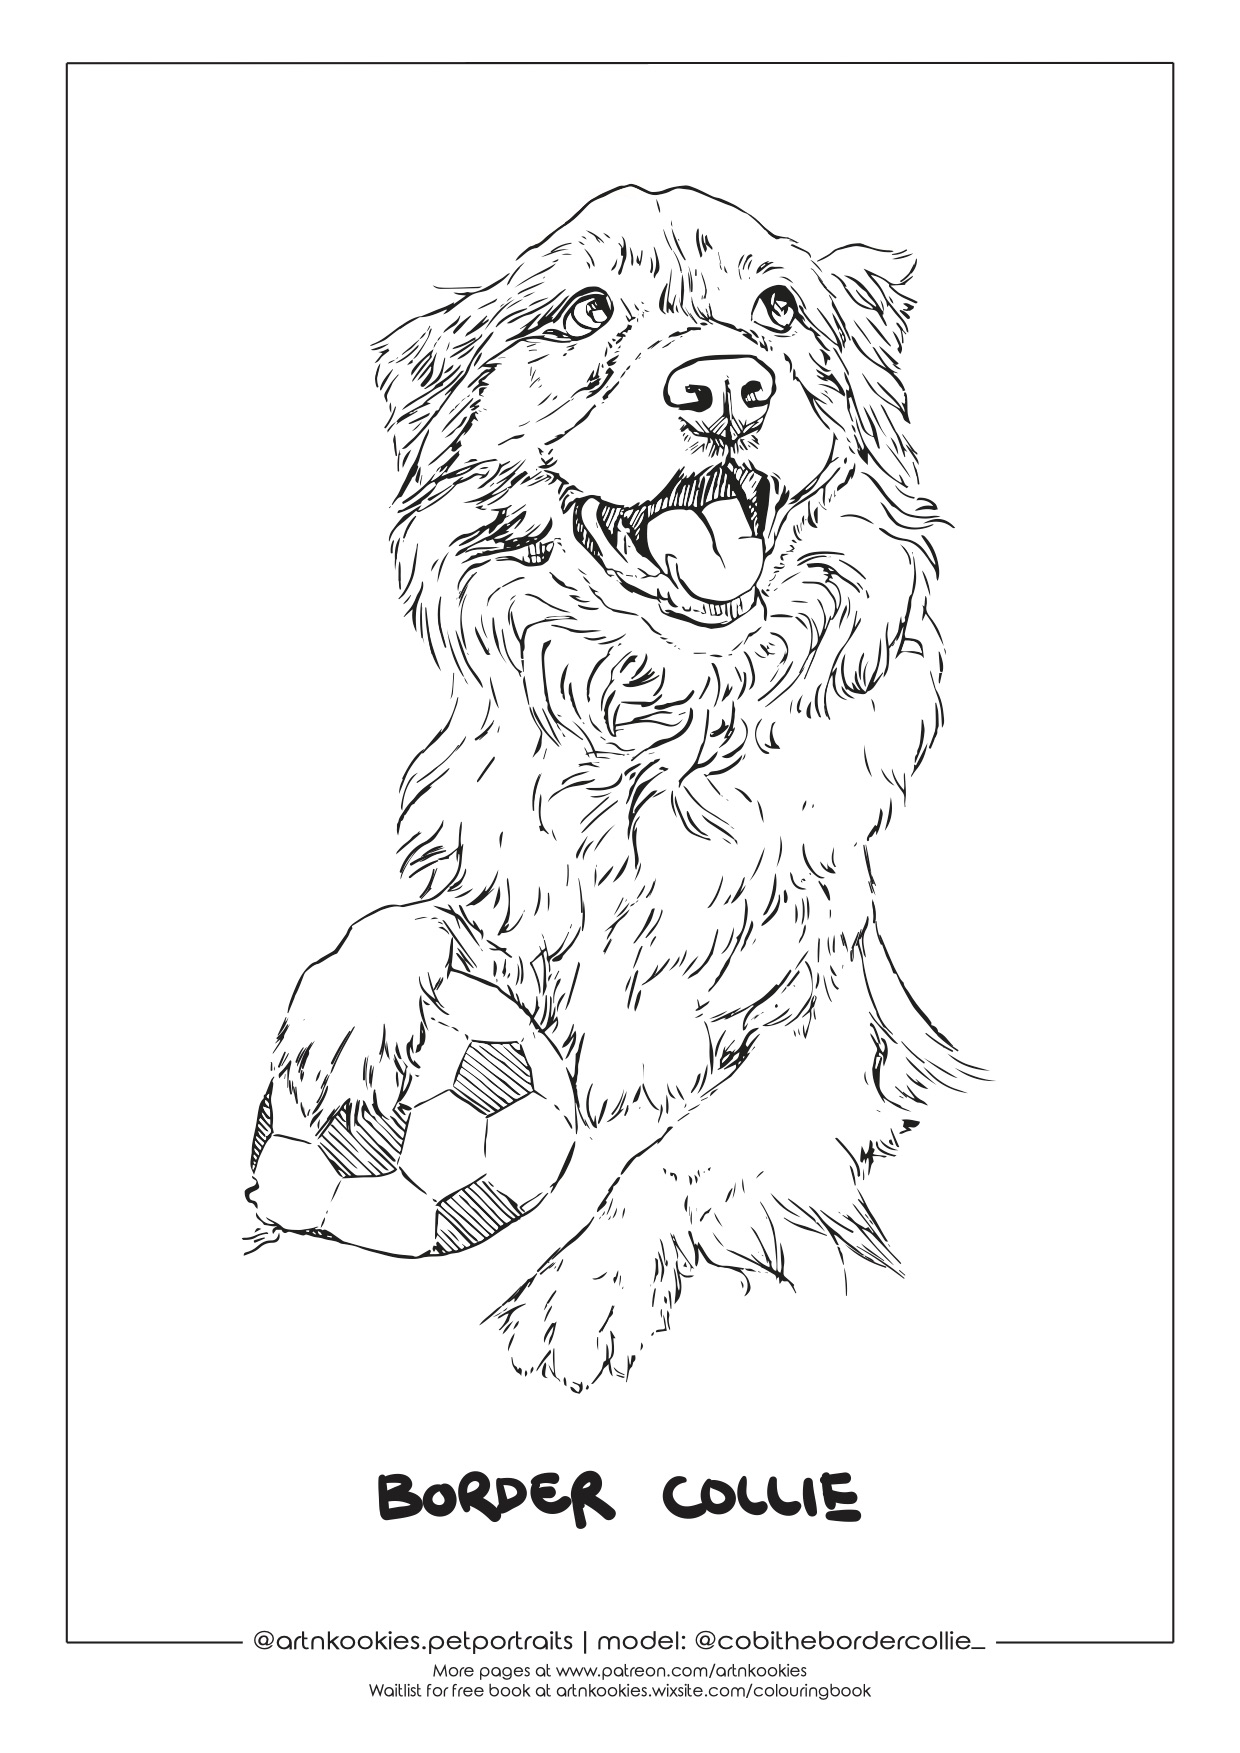 I'm Making Free Colouring Pages Of Your Best Furriends (Send Me Your Dog Pics)